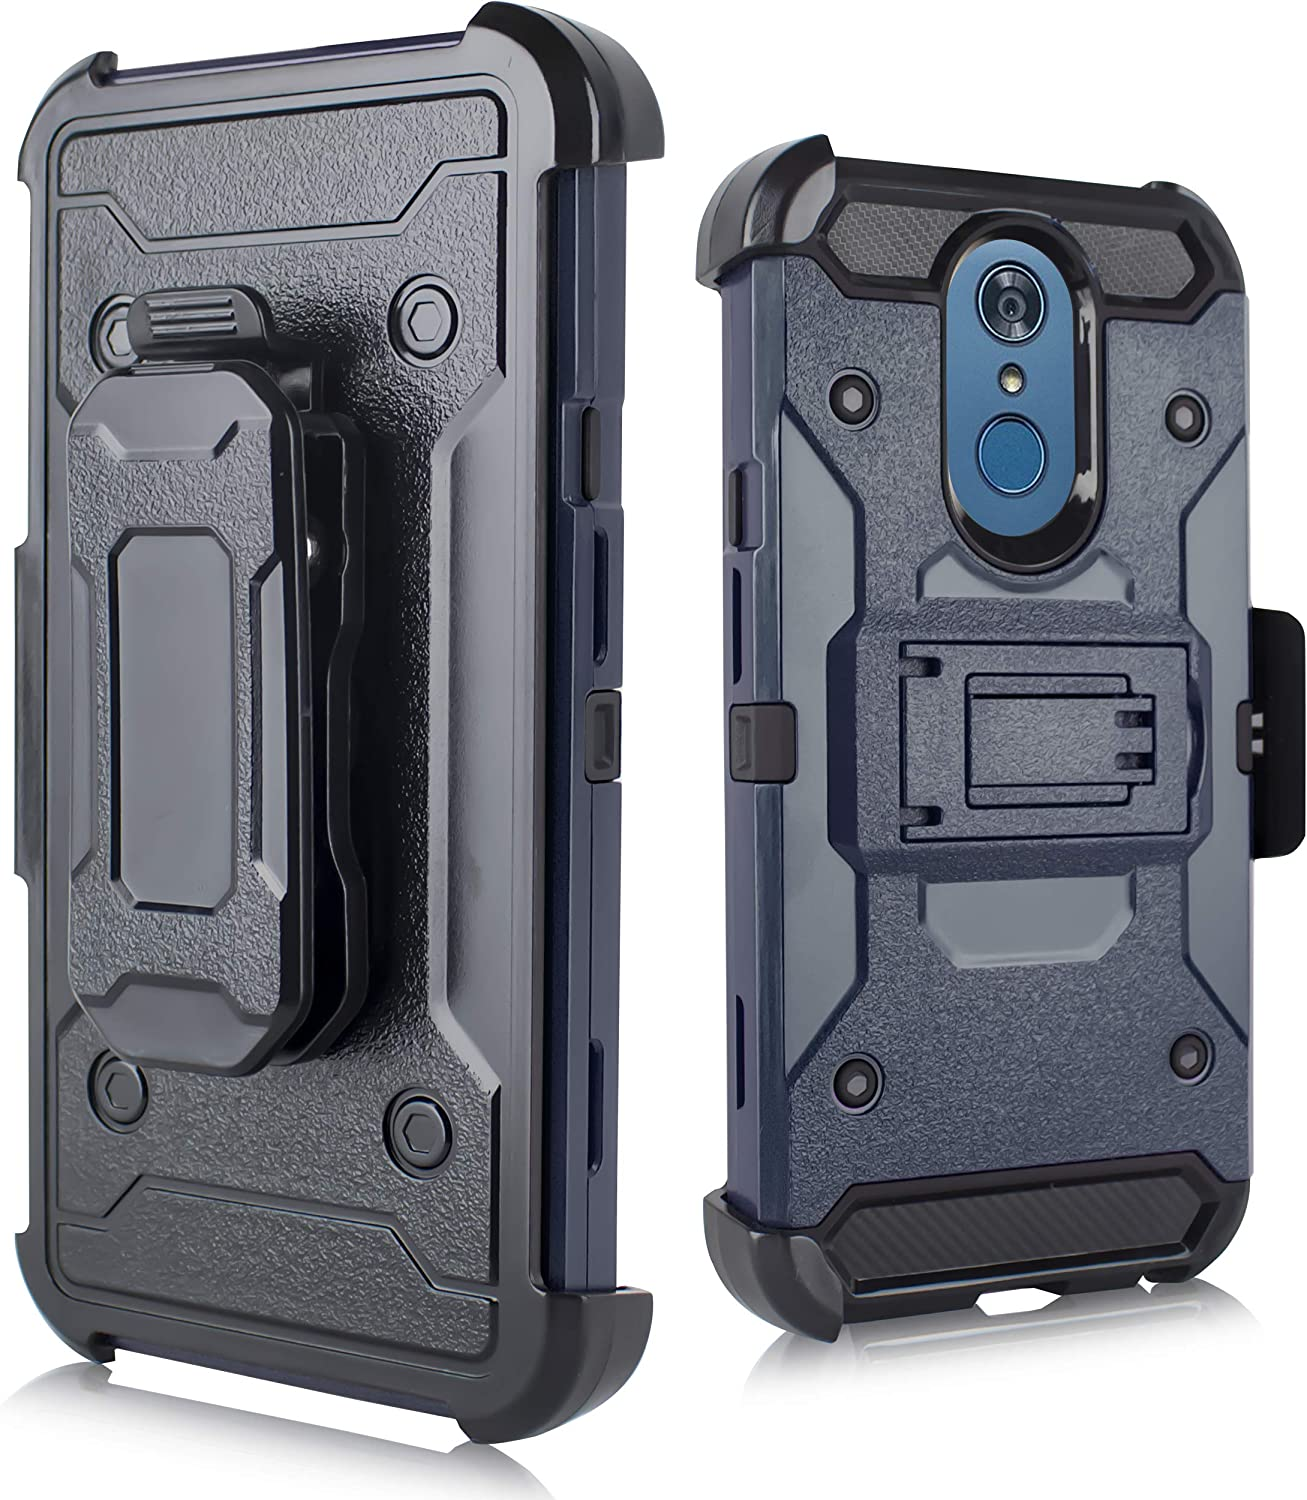 LG Q7 Case, LG Q7 Plus Case, LG Q7 Alpha Case, Heavy Duty Shockproof Full Body Protection Case Cover with Swivel Belt Clip and Kickstand (Blue)